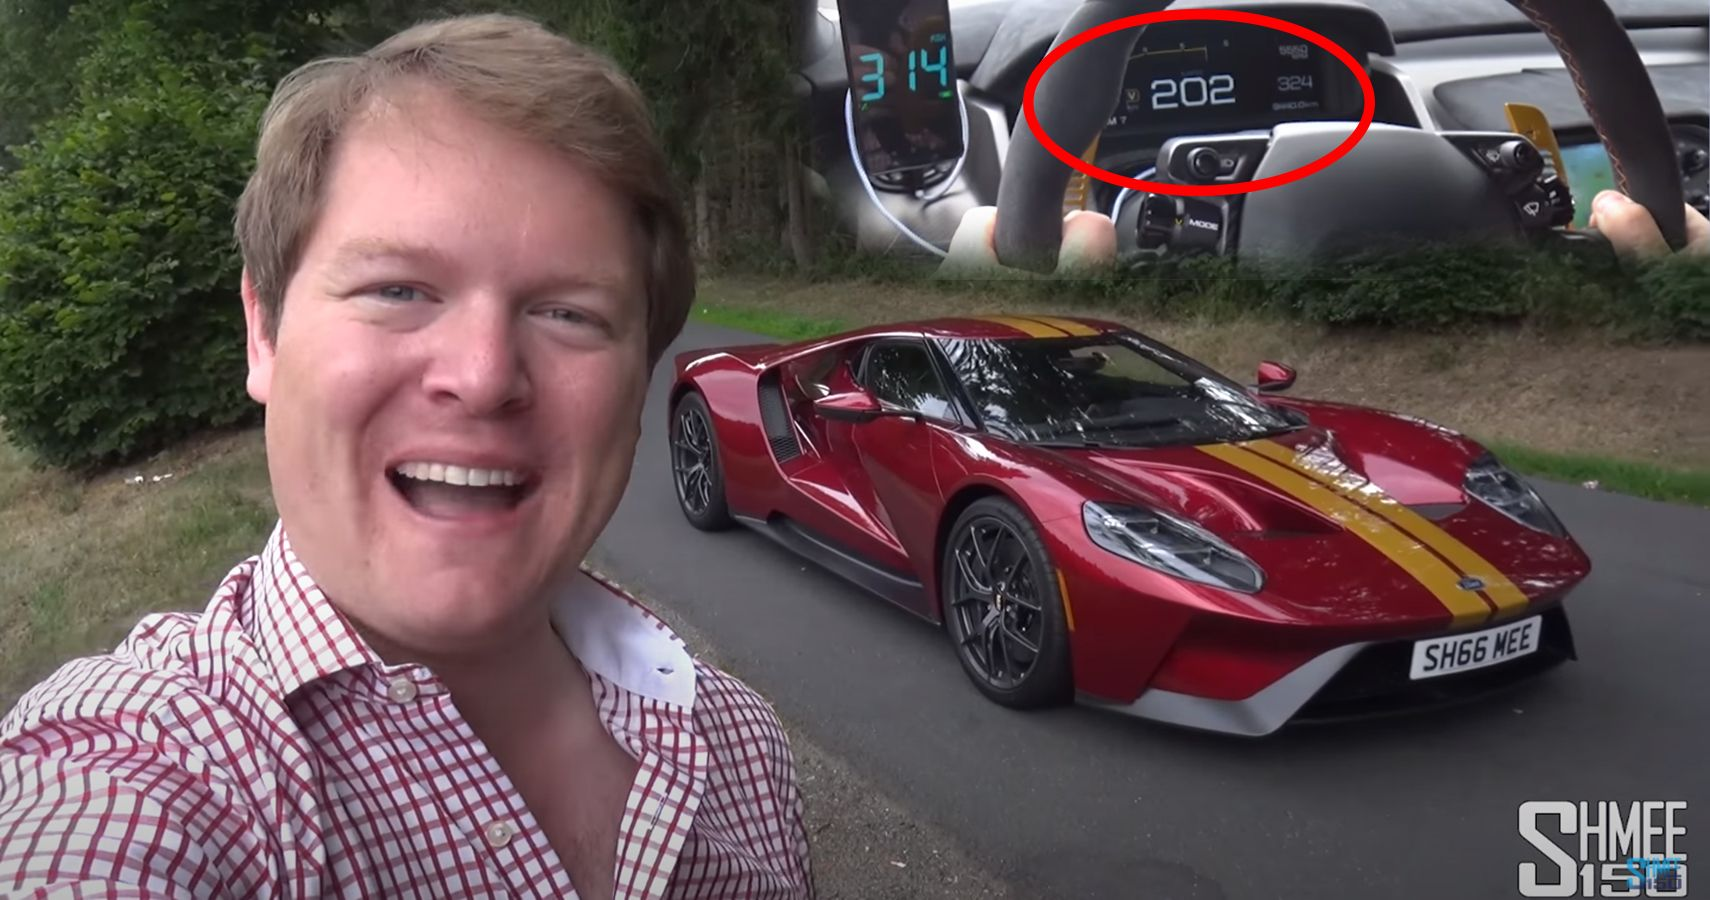 Watch Shmee150 Drive His Ford GT 202 MPH On The Autobahn